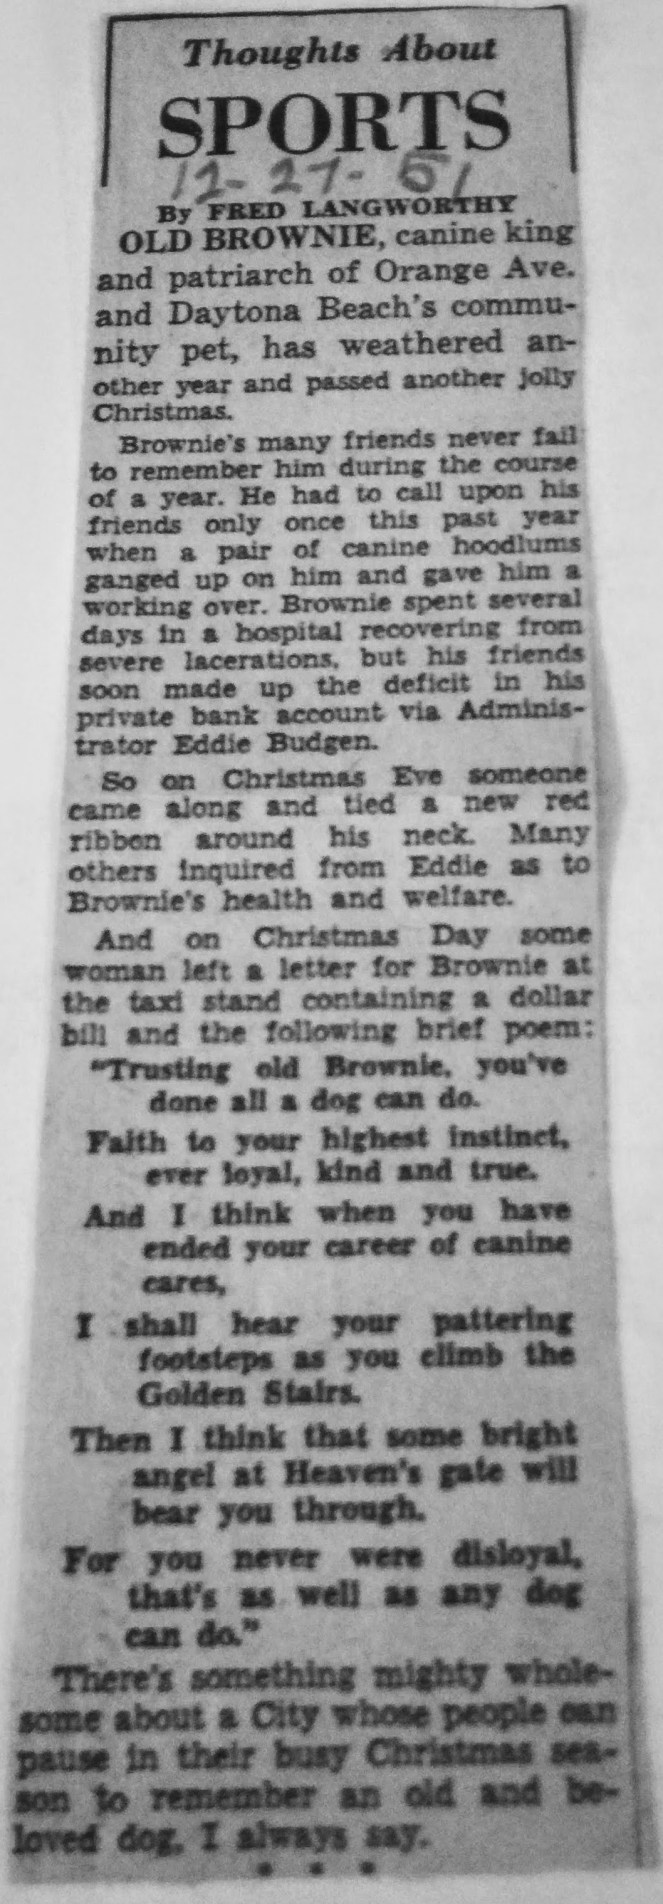 December 27, 1951: Thoughts turn to Brownie on Christmas